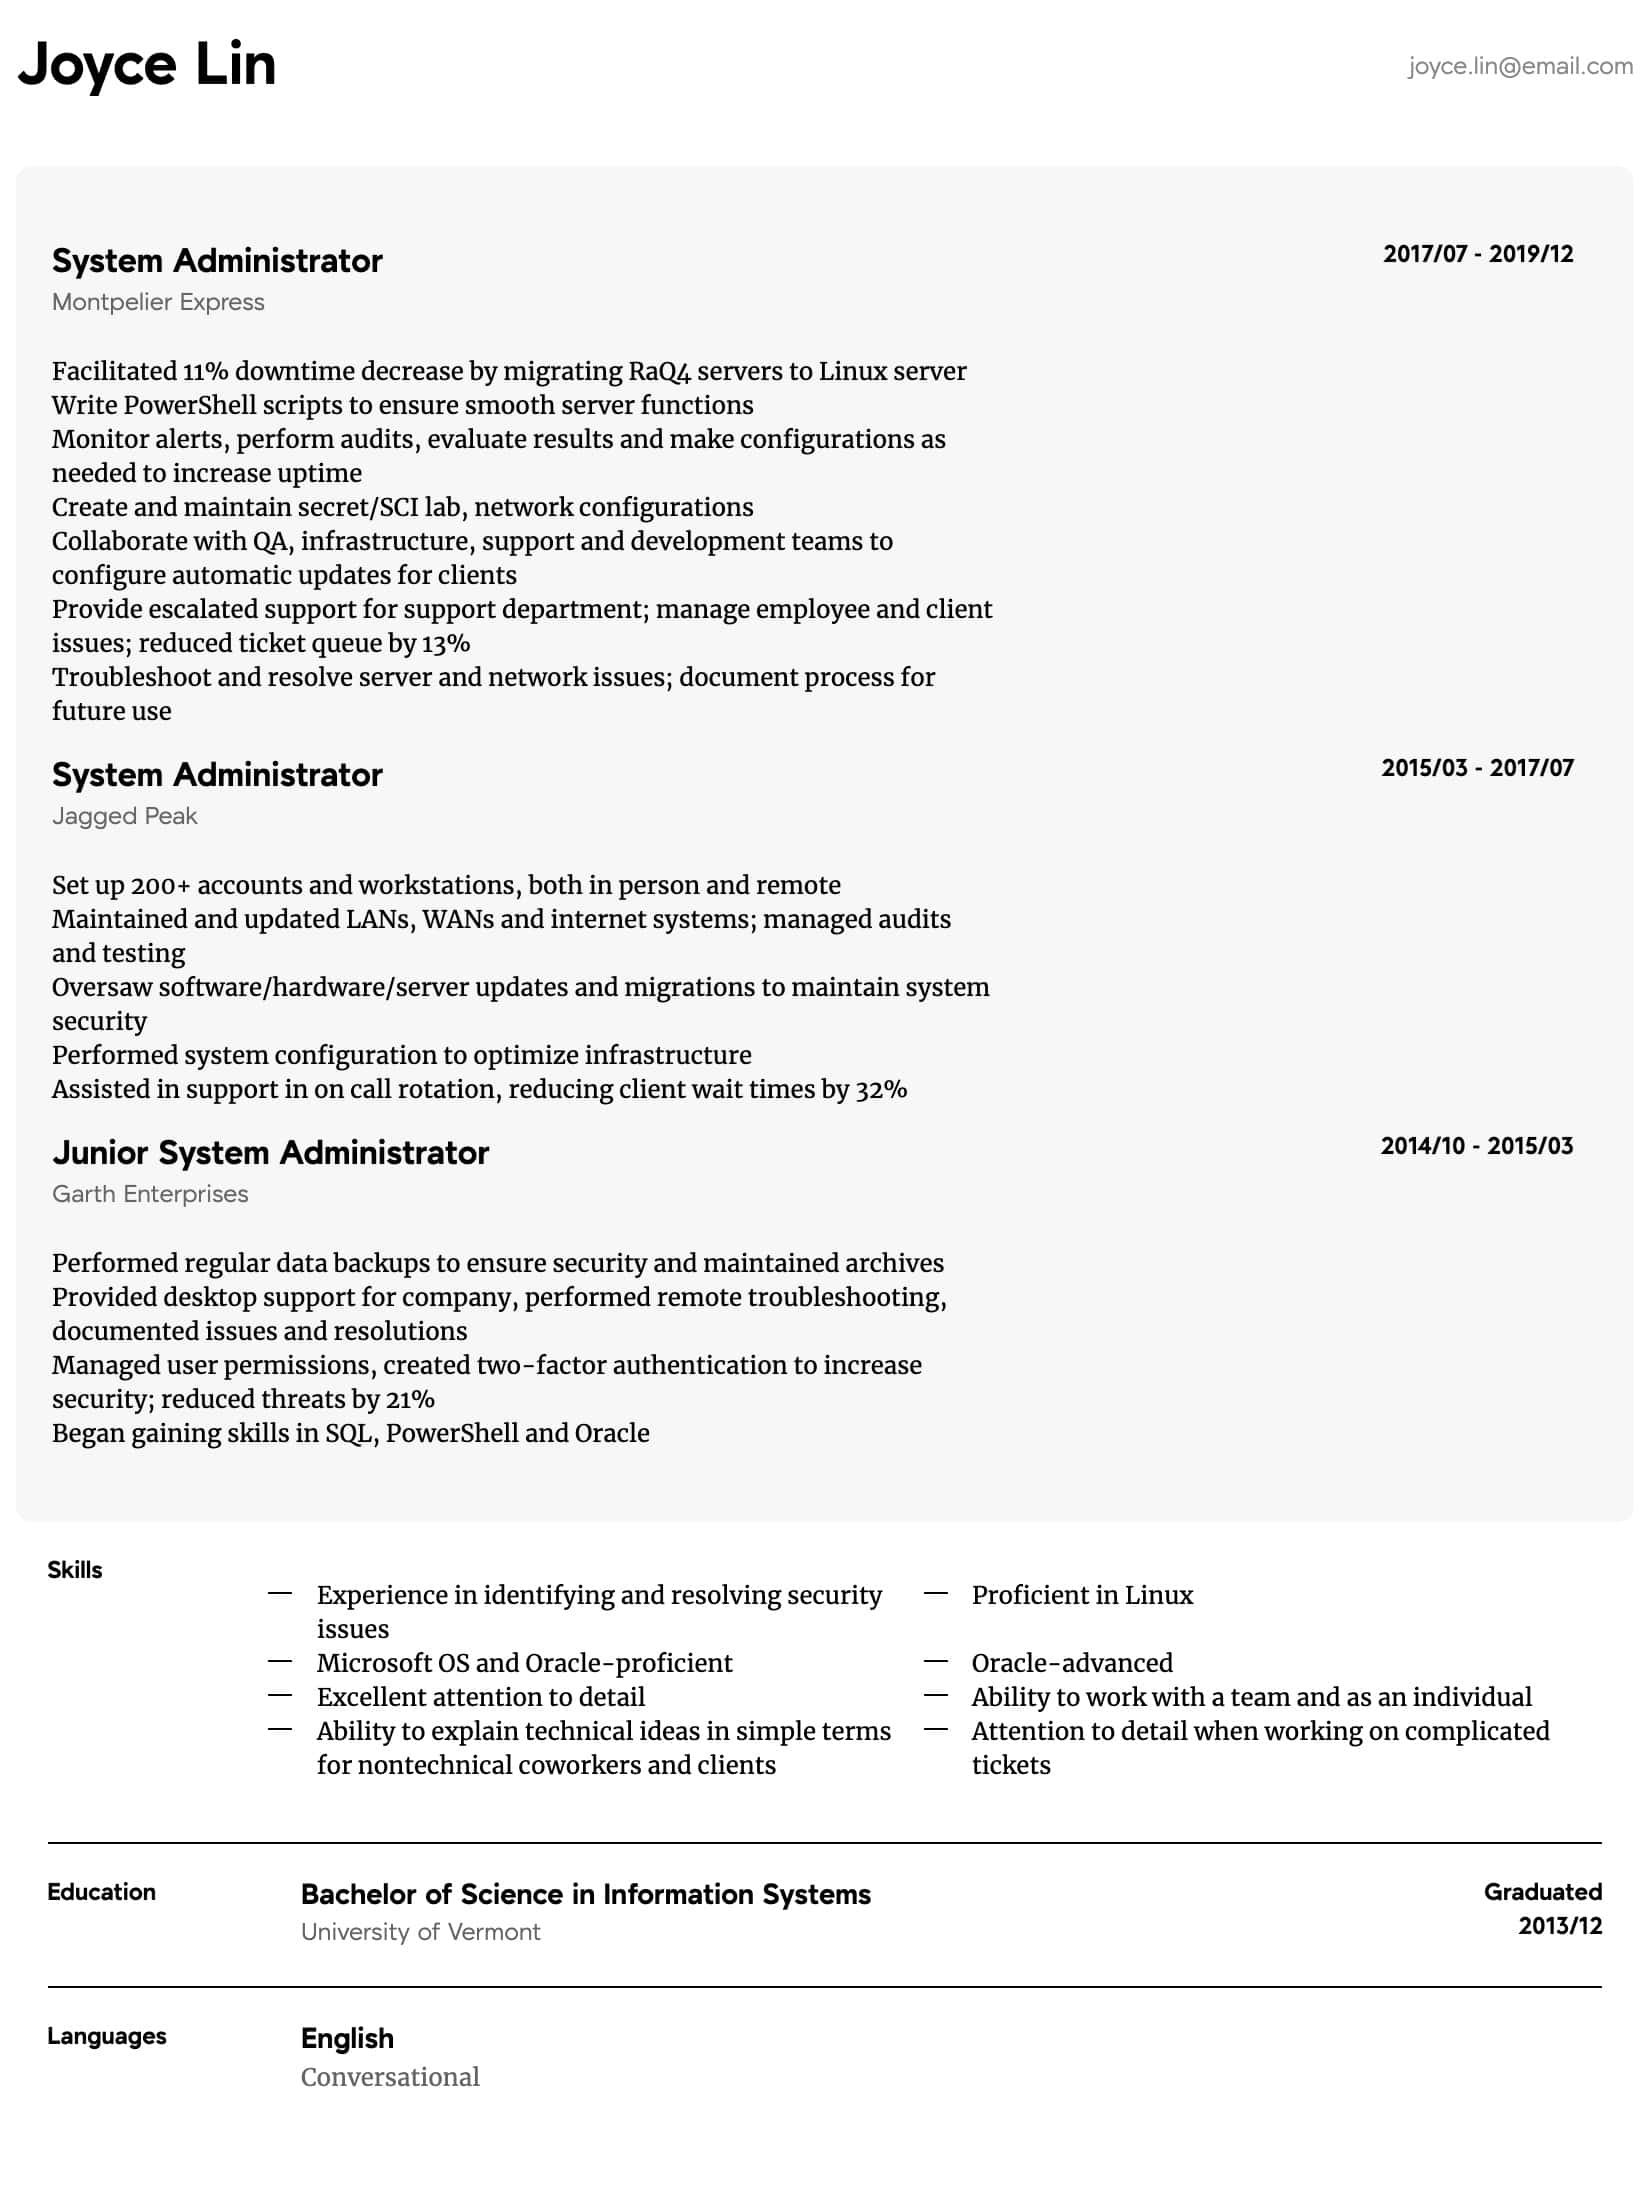 System Administrator Resume Samples All Experience Levels